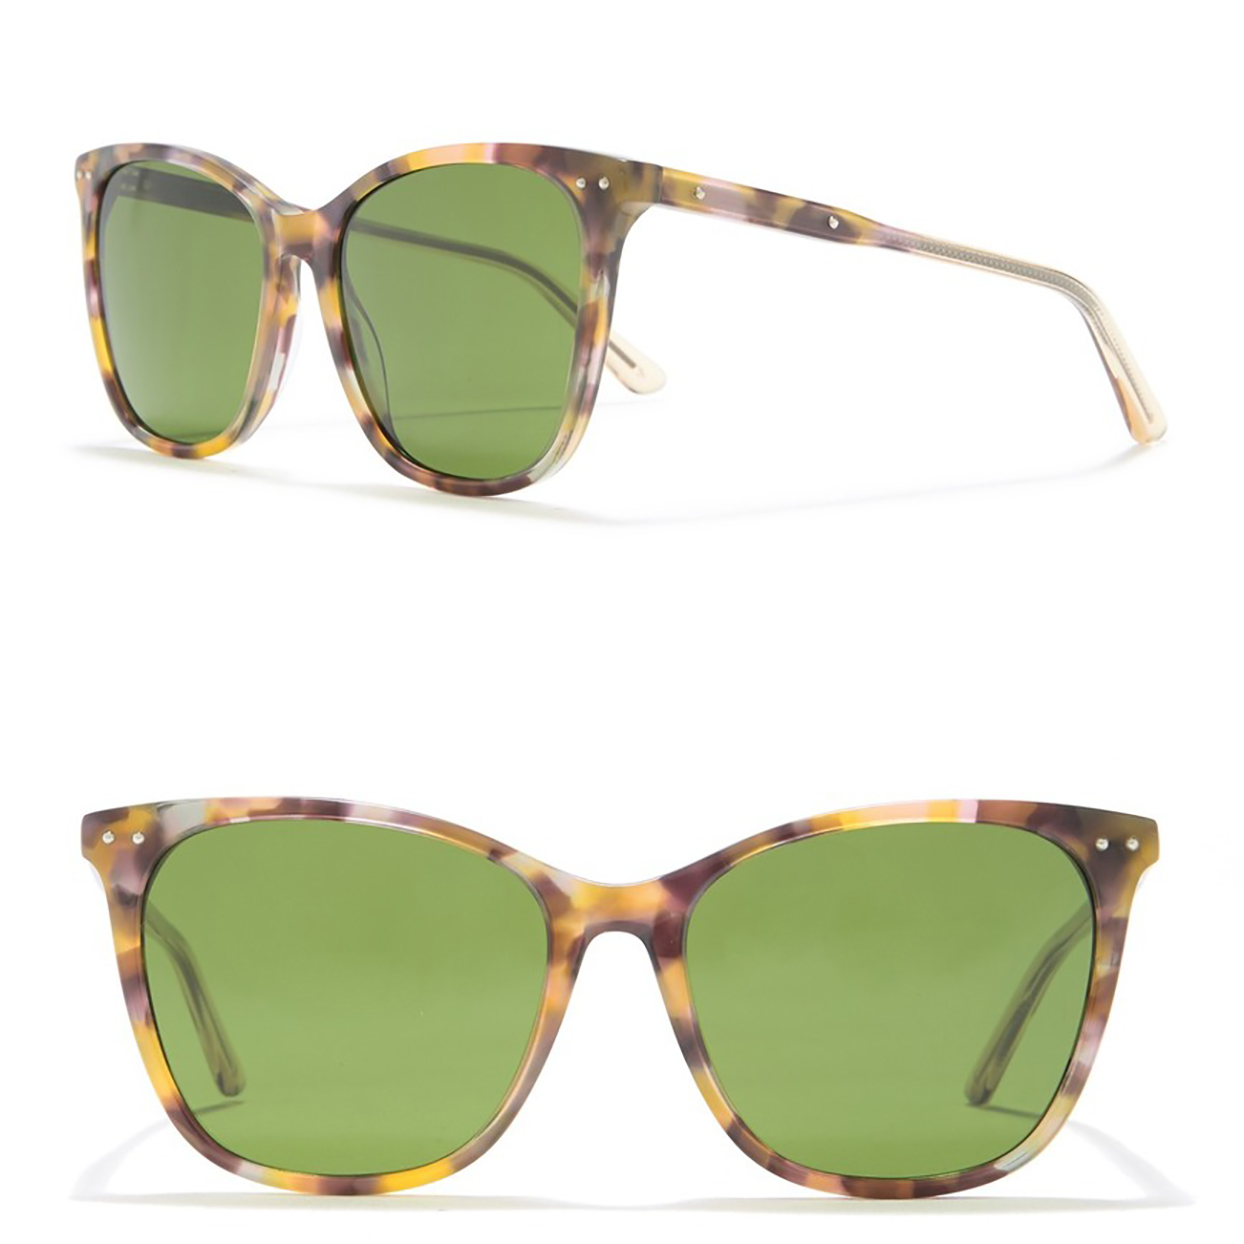 Bottega Veneta 55mm Square Sunglasses